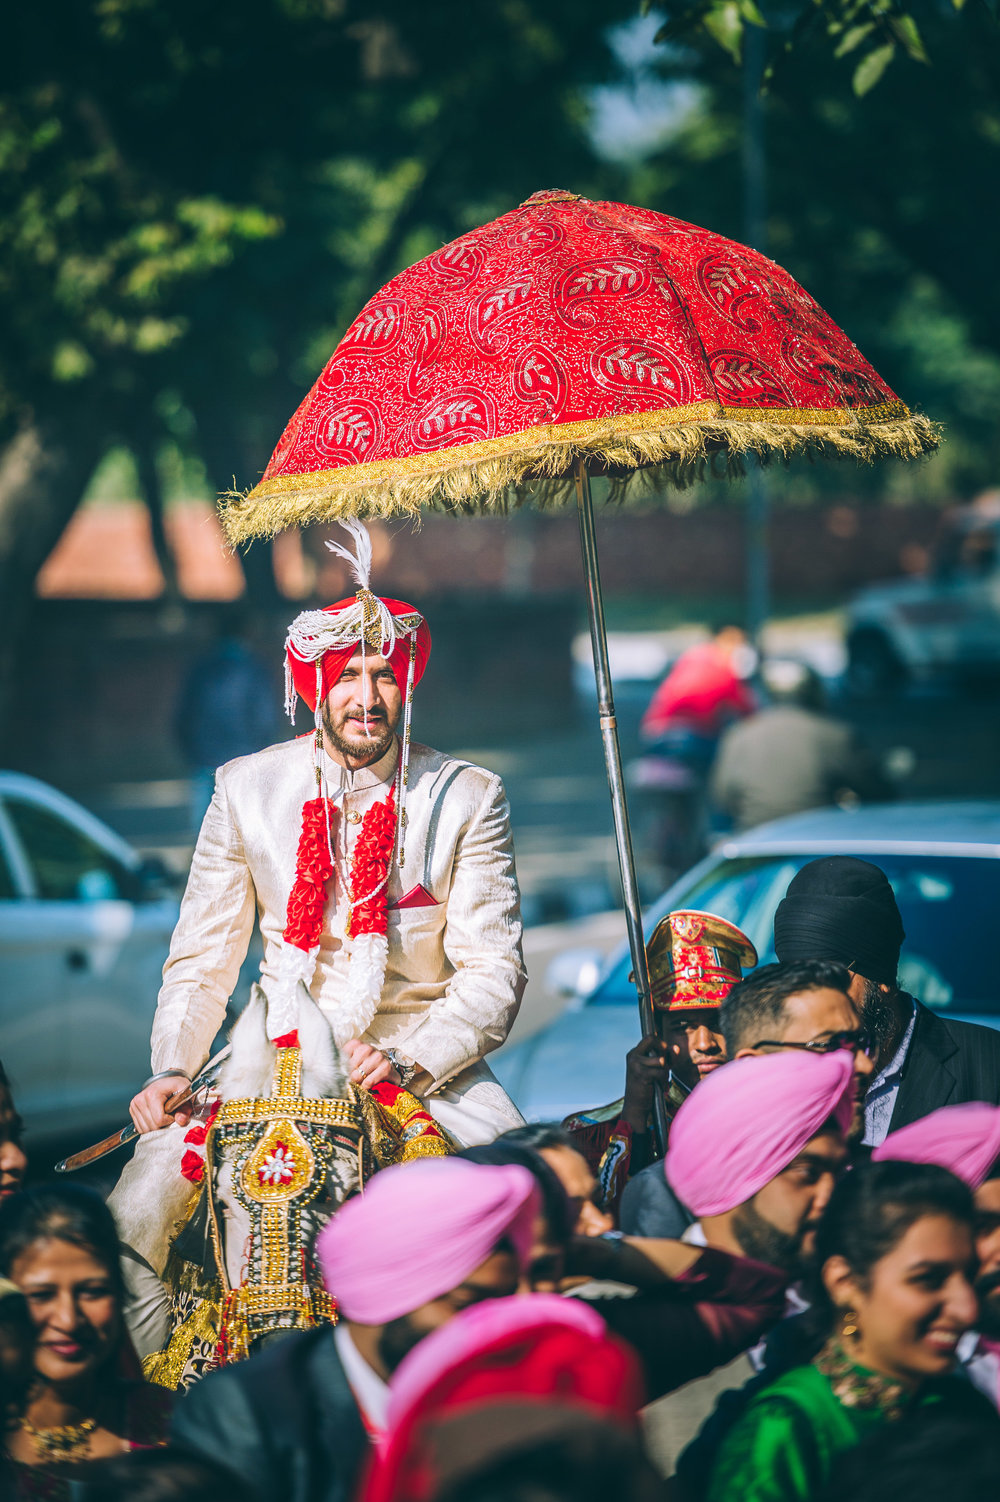 Doesn't this groom look like a knight in shining armour (without the shield but with his Kirpan) riding his pristine white horse?